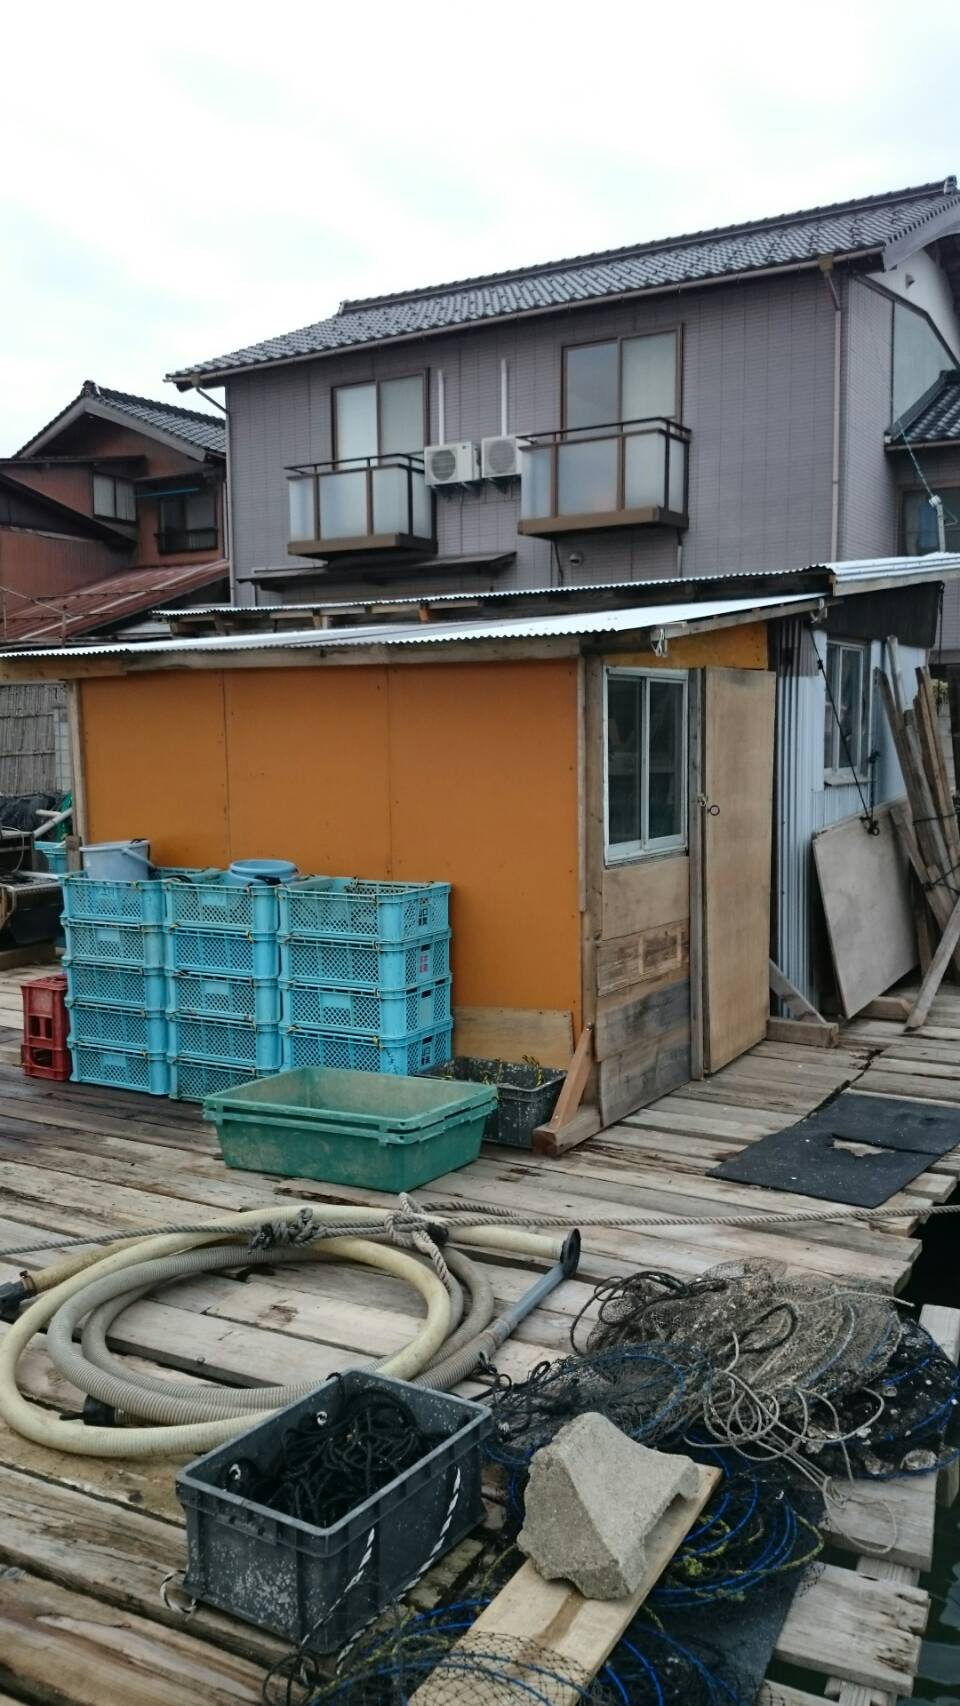 Kumihama Bay, building an oyster shack